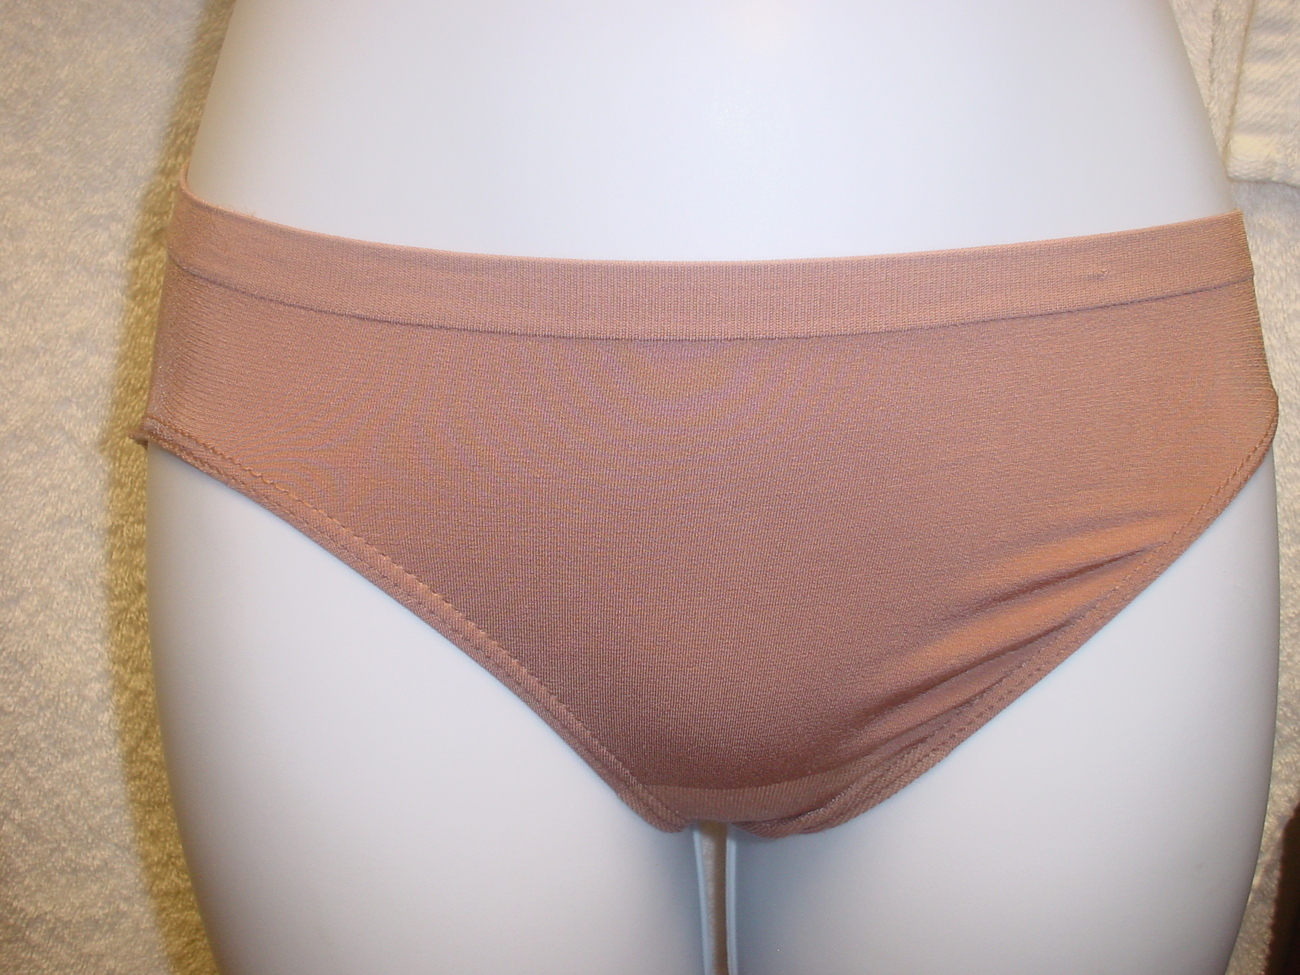 Jockey Seamless Panty 5/Small Brown SP-Slightly Imperfect  NWOT